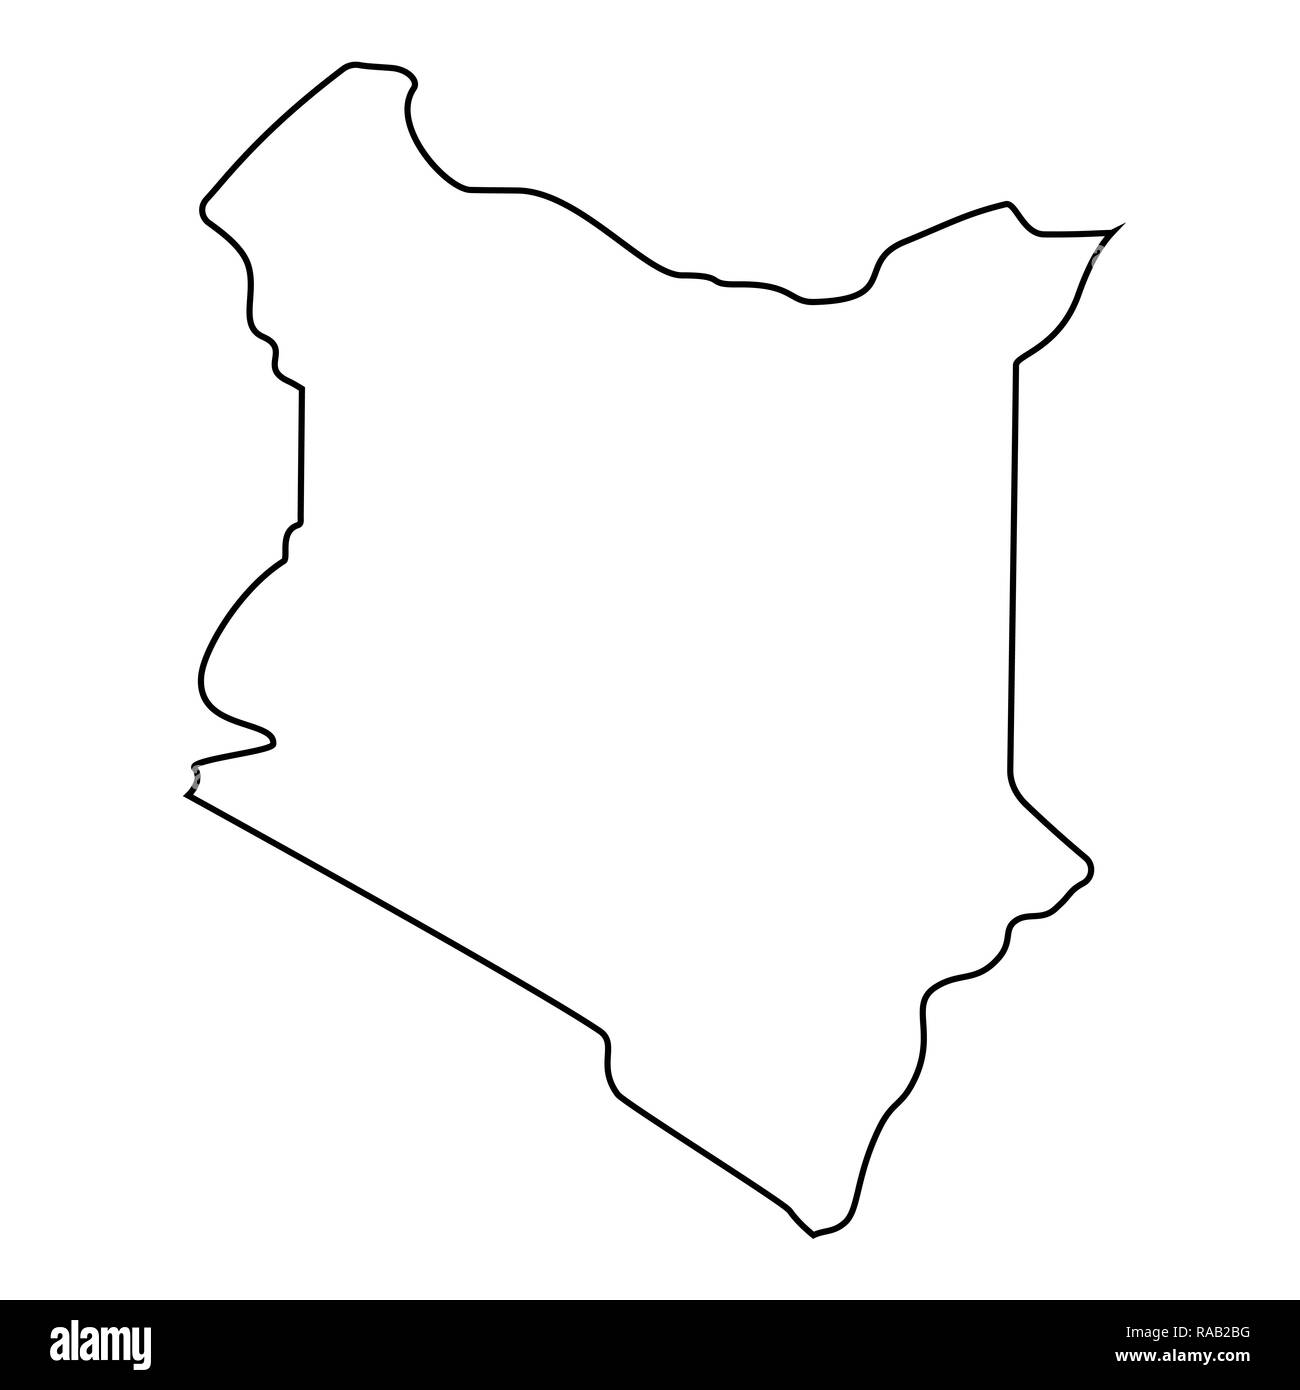 Kenya Map Black and White Stock Photos & Images - Alamy